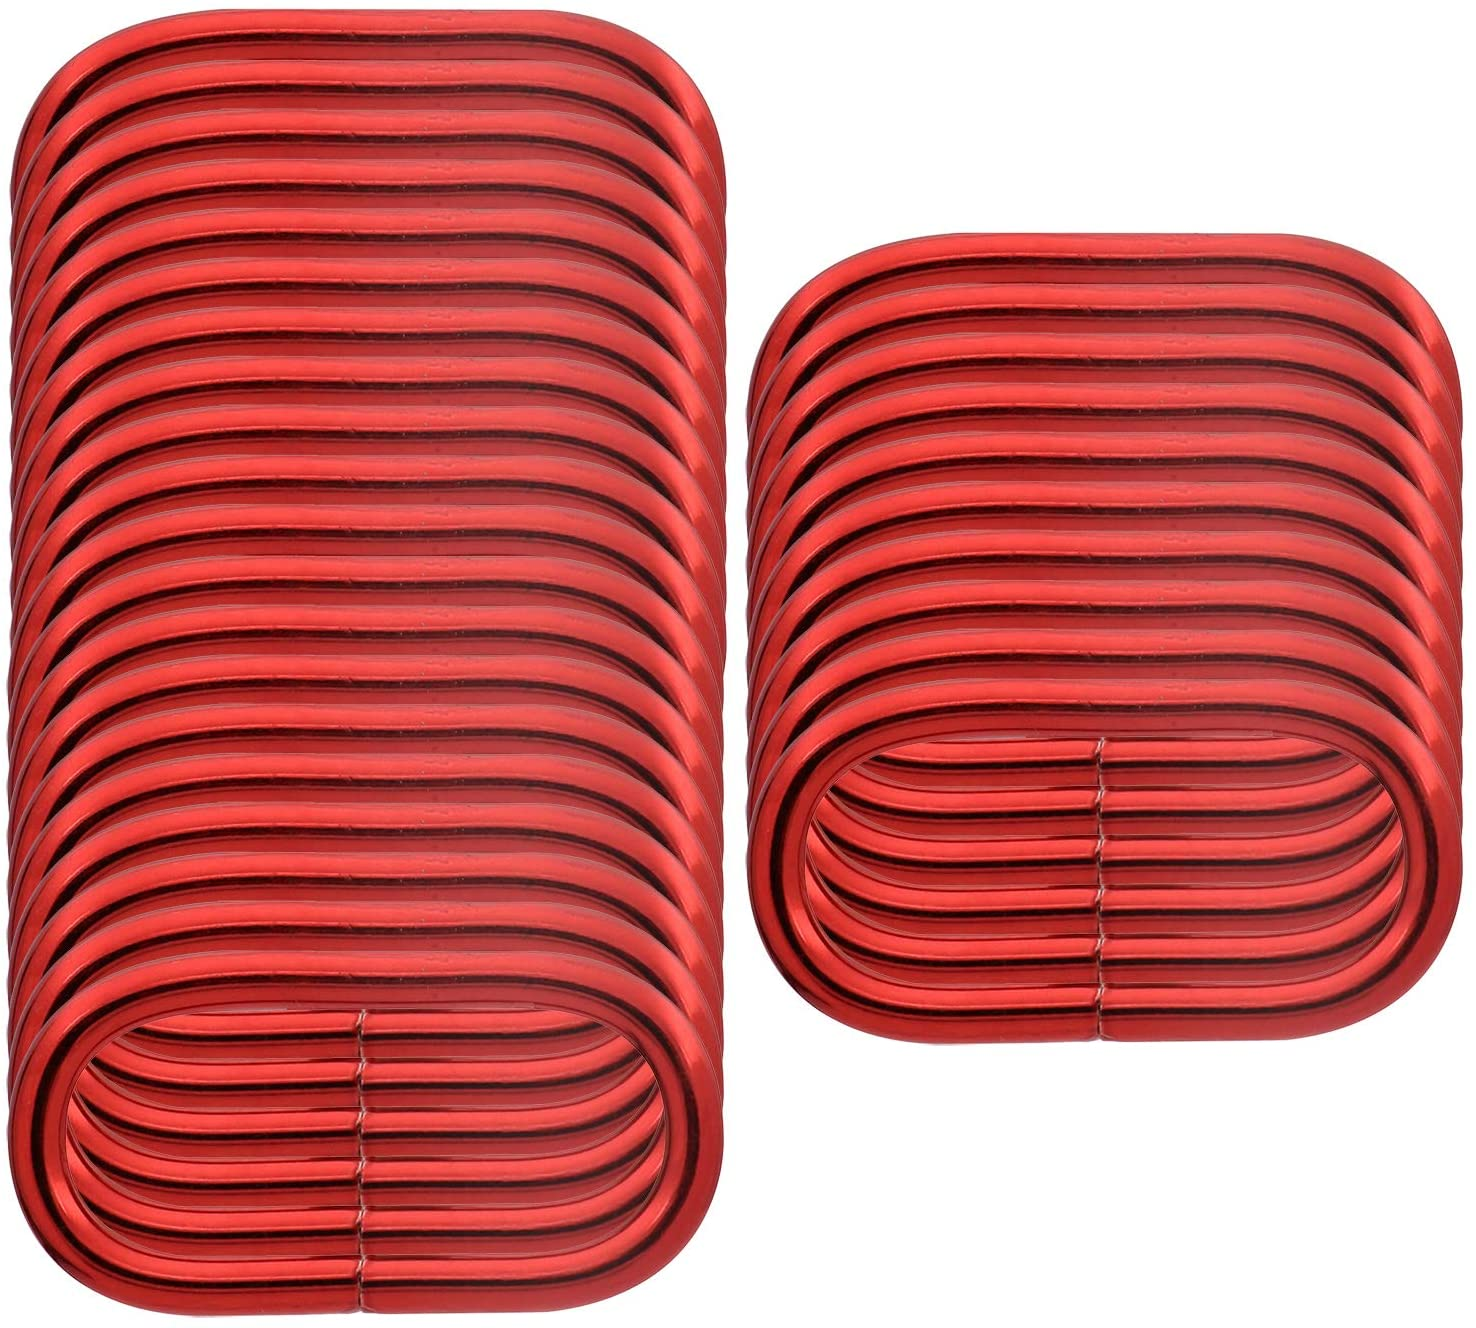 BIKICOCO 1-1/2'' Metal Oval Ring Oval Loops Non Welded for Leather Purse Bags, Handbag Straps, Red - Pack of 30